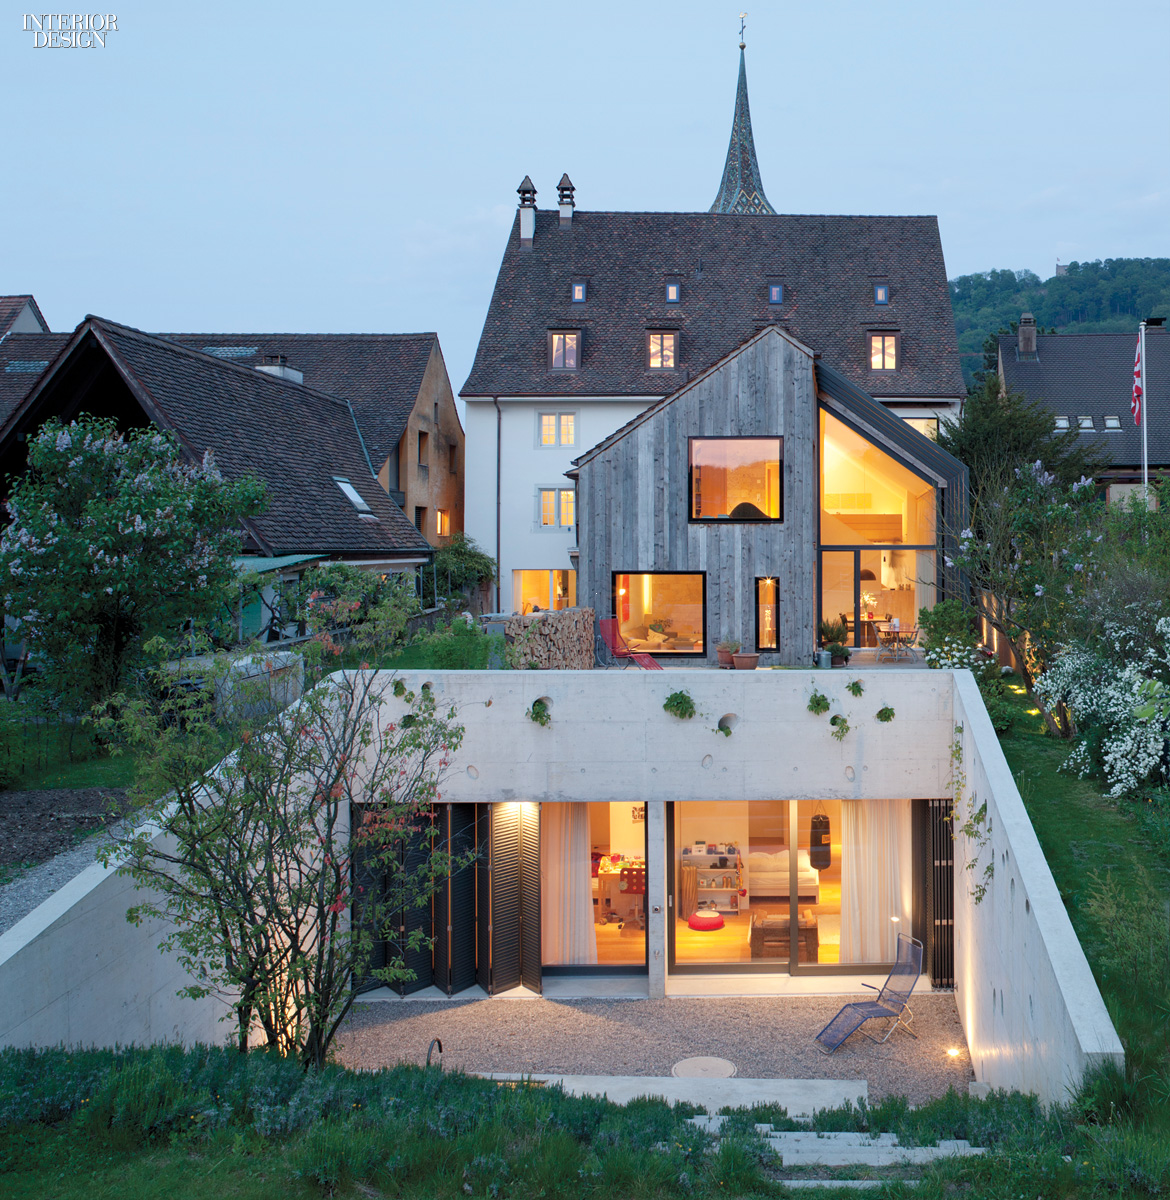 In Muttenz, Switzerland, A 1743 Farmhouse And Its Stone And Stucco Facade  Have Been Restored By And Converted Into The European Office Of Oppenheim  ...